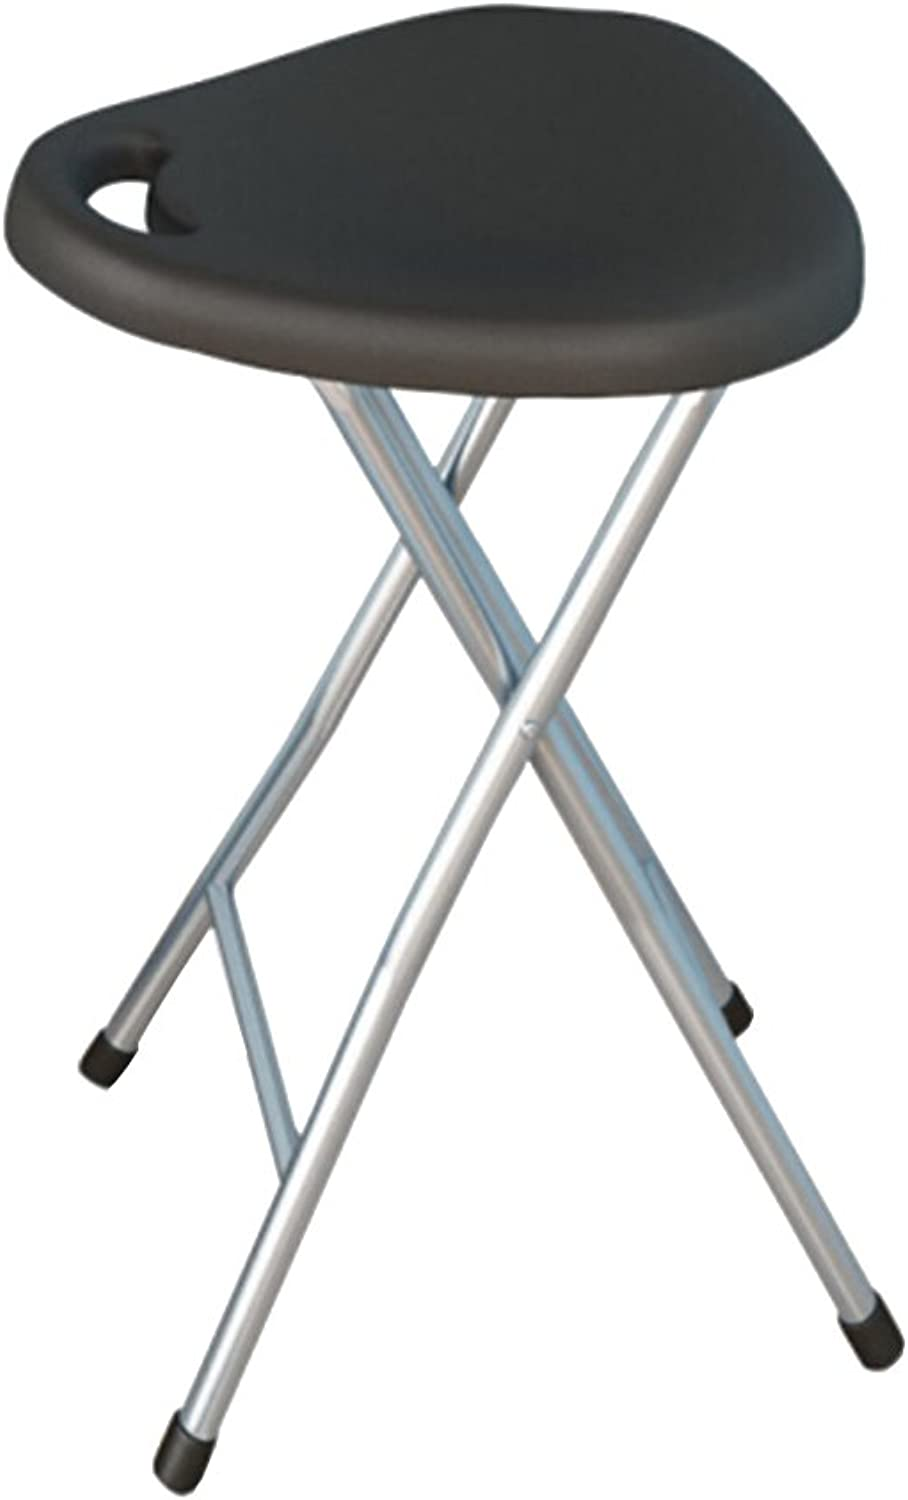 Folding Stool Chair Plastic Office Computer Stool Home Leisure Portable Stool Fishing Stool Black   red White   25  30  47cm (color   Black)